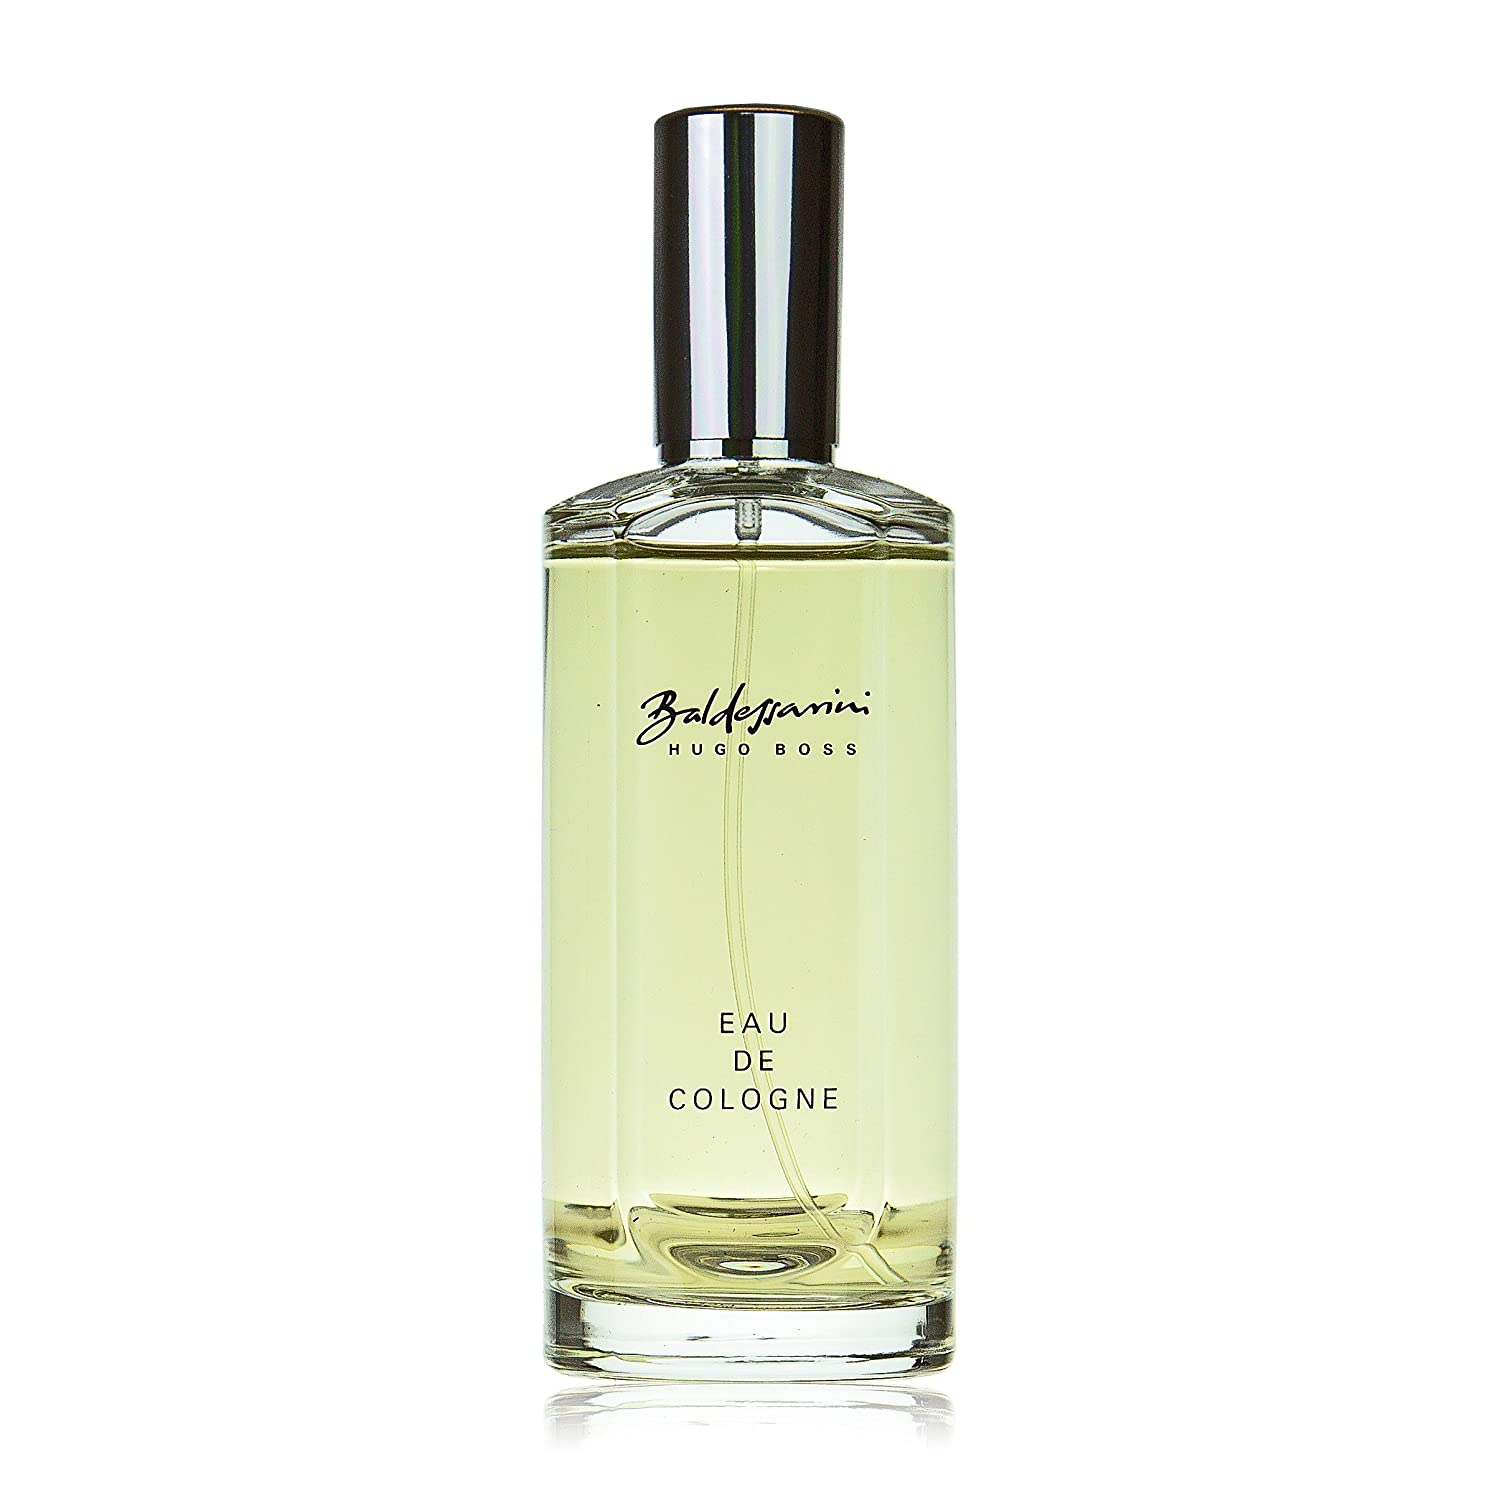 Baldessarini by Baldessarini Eau de Cologne Spray Refill 50ml